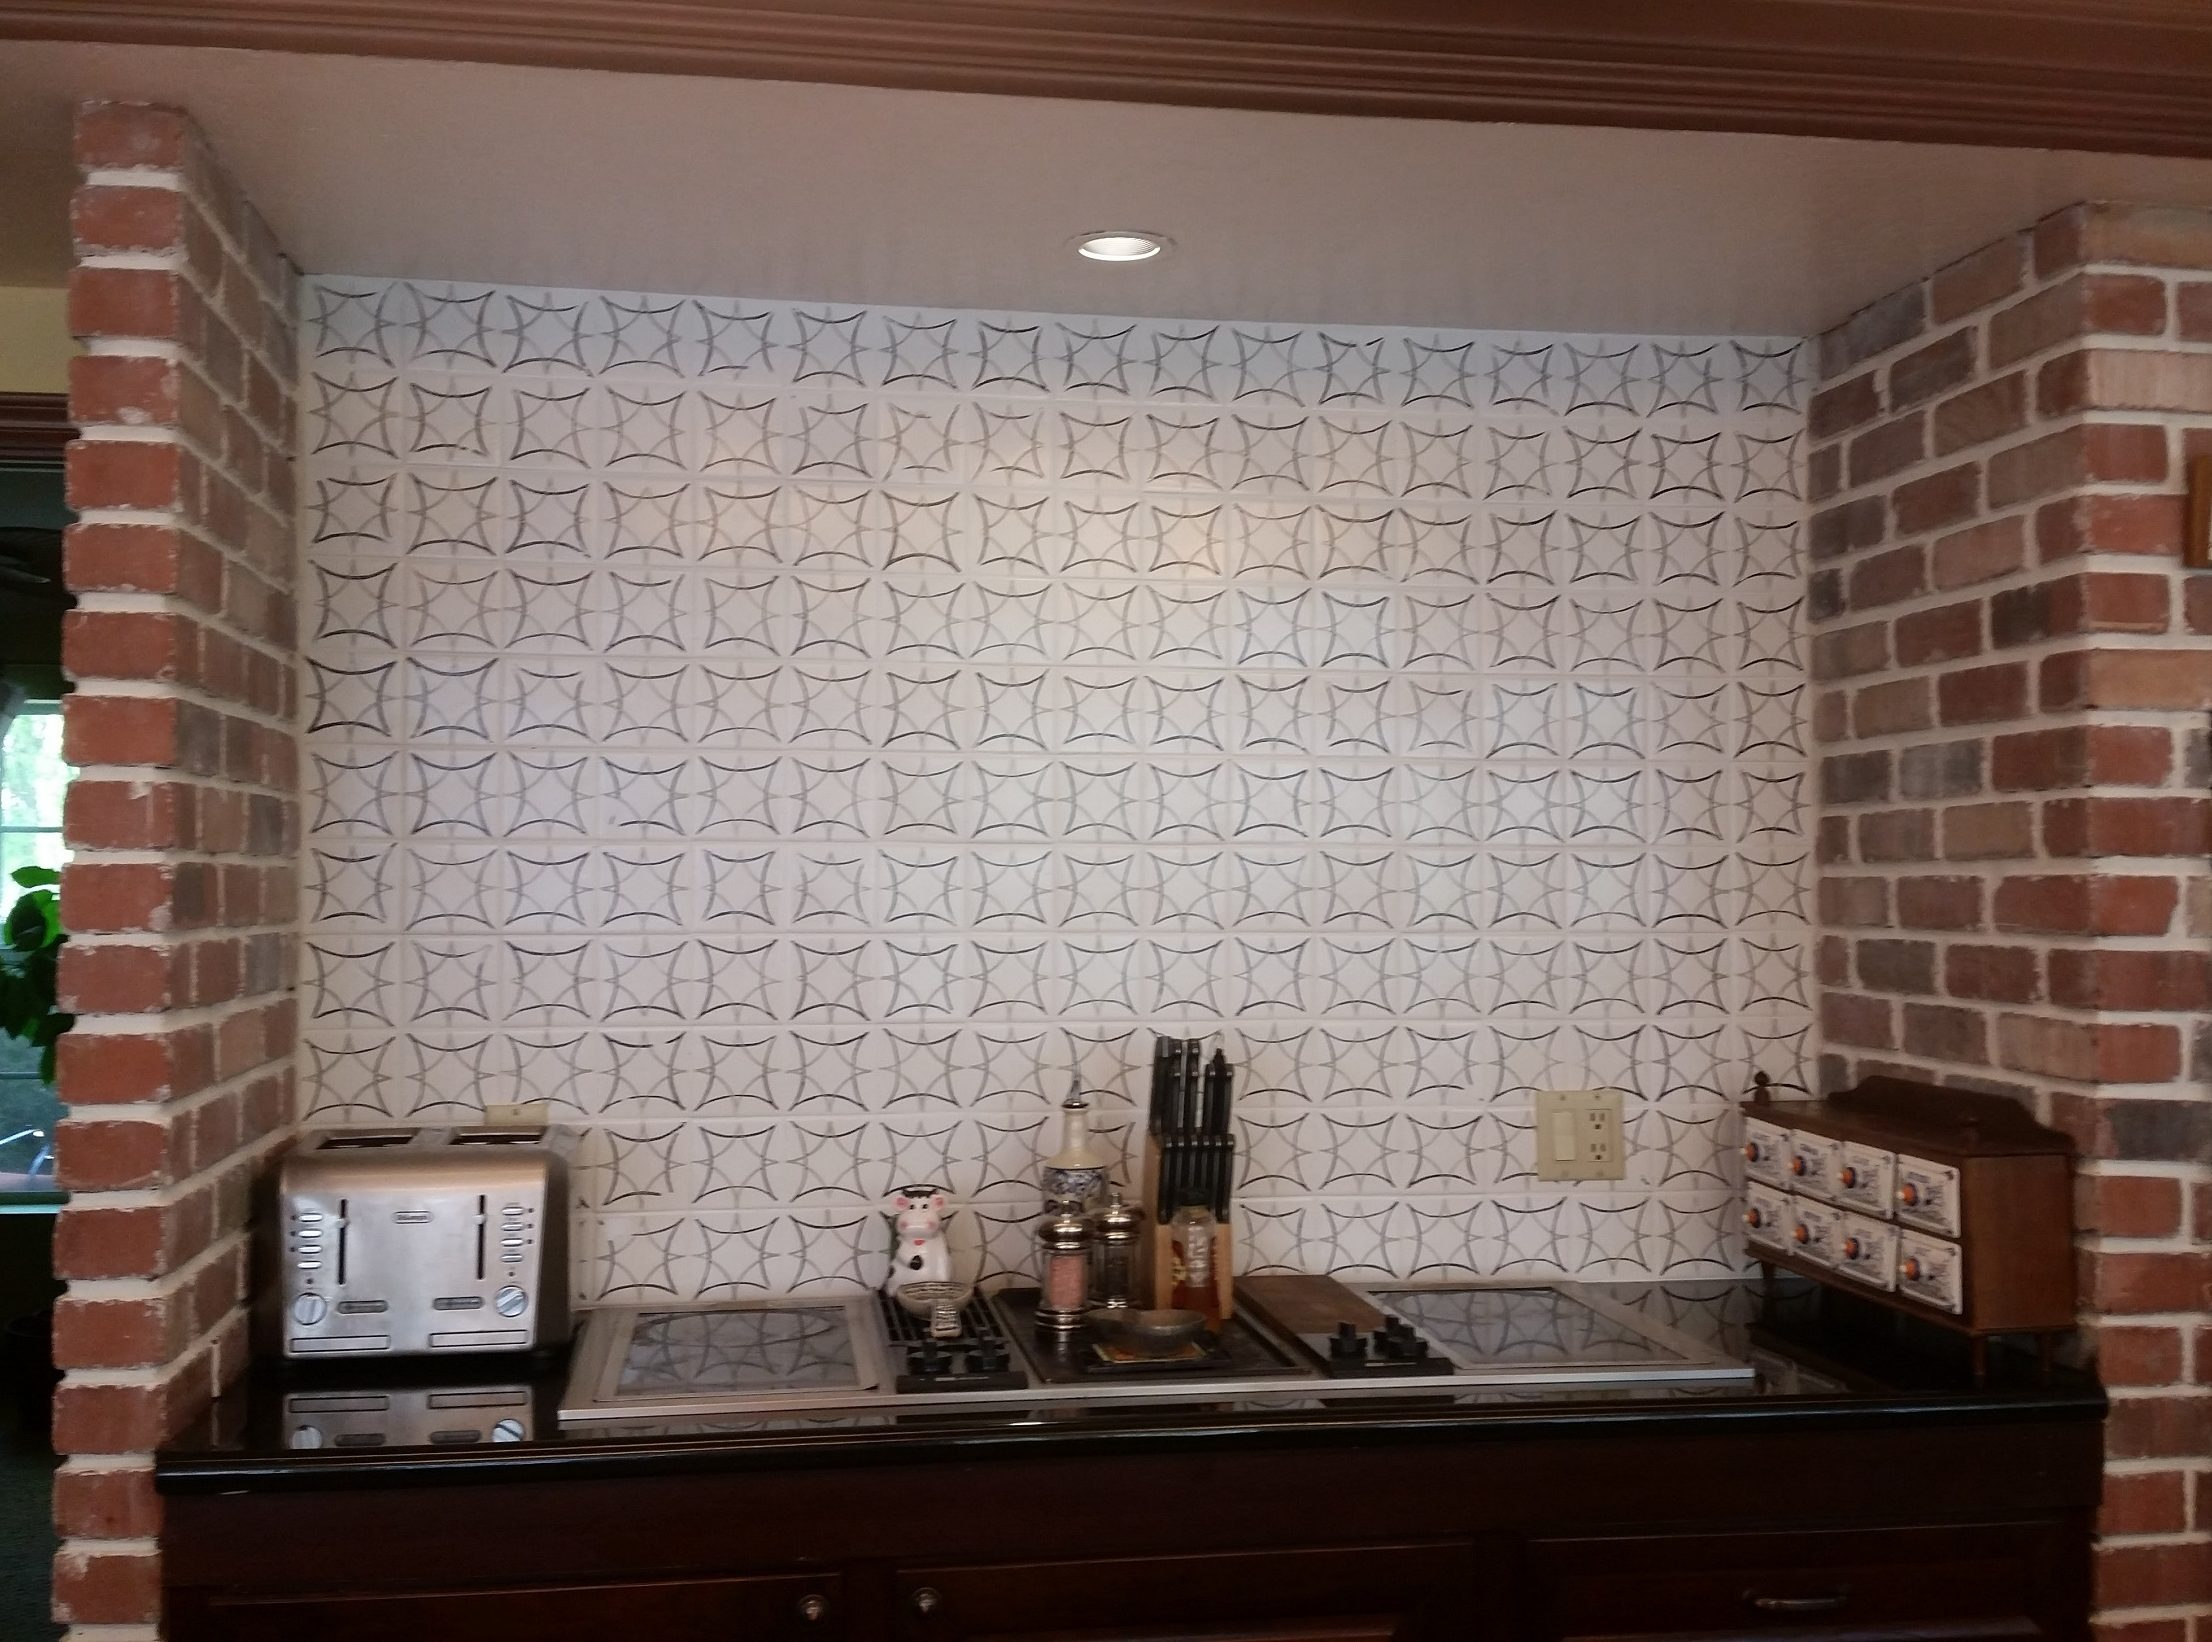 - How To Make A Fabulous Faux Cement Tile Backsplash (for Less Than